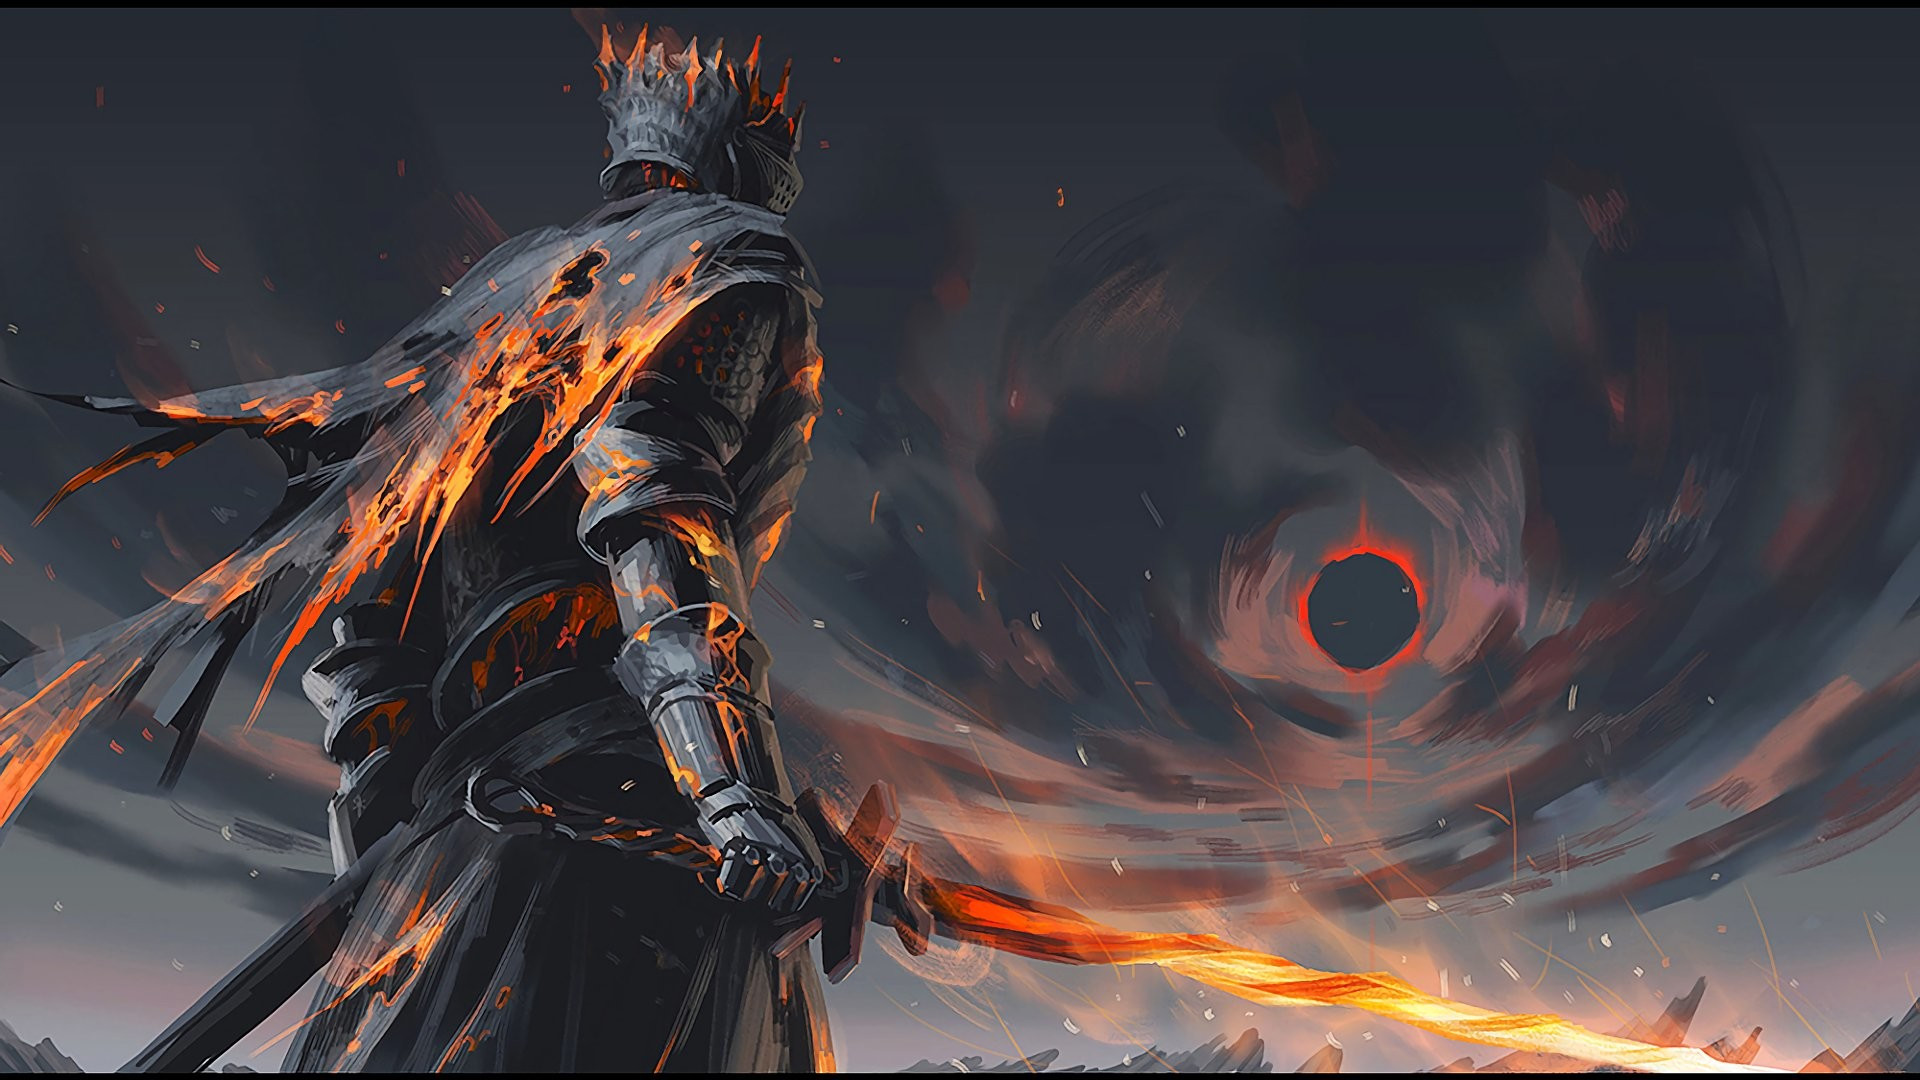 1920x1080 HD Wallpaper | Background ID:698414.  Video Game Dark Souls III.  39 Like. Favorite